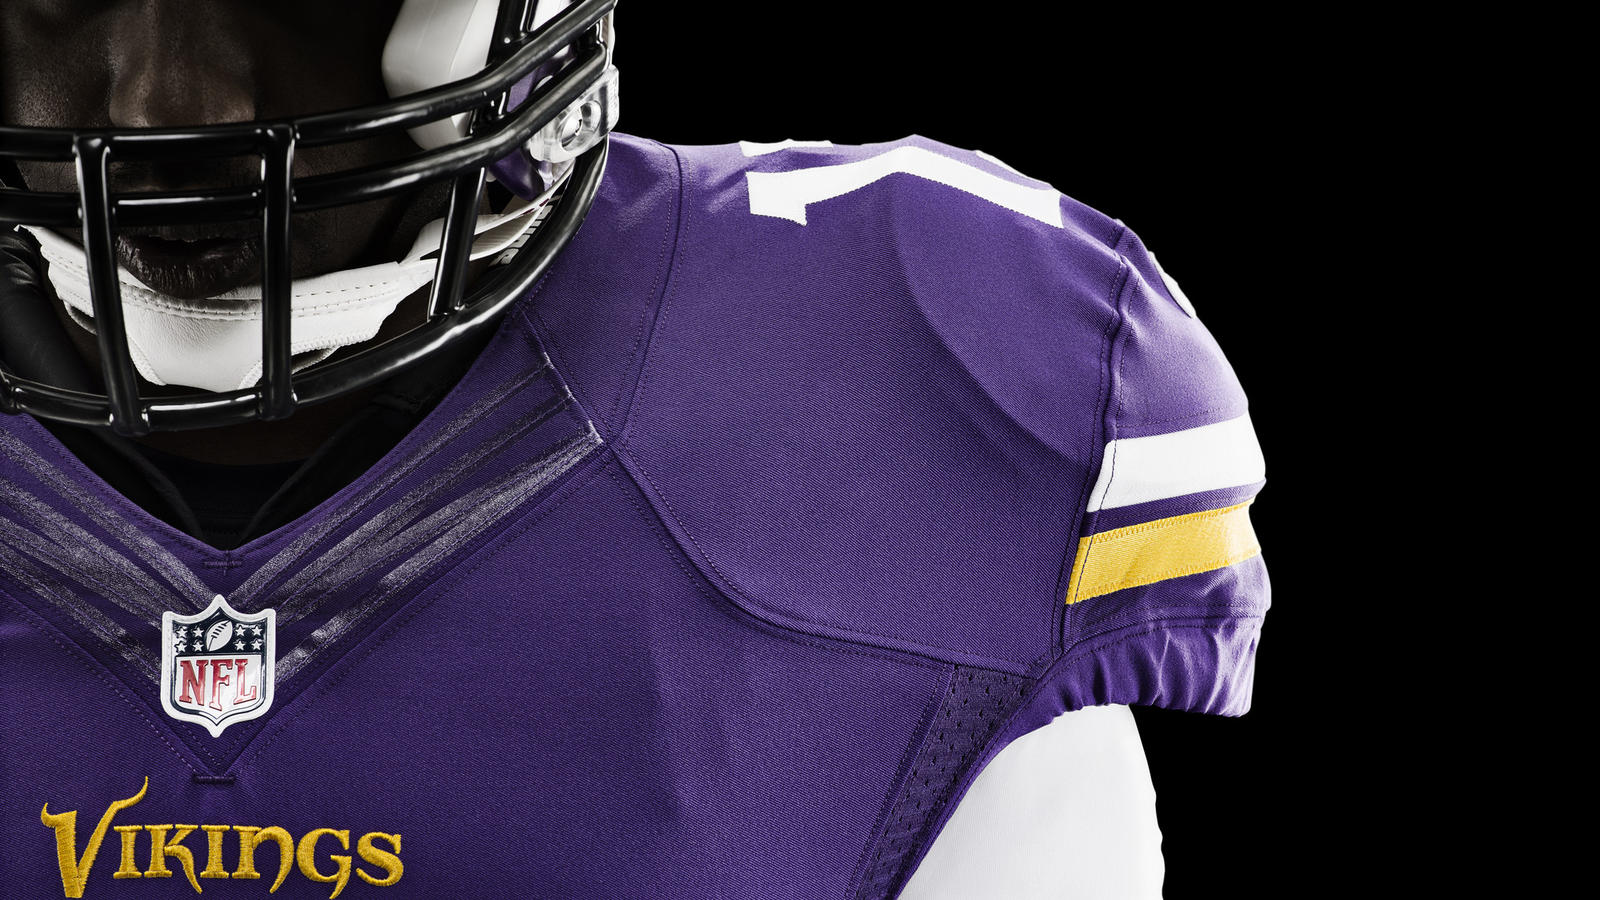 vikings-nfl-nike-elite-51-uniform-front